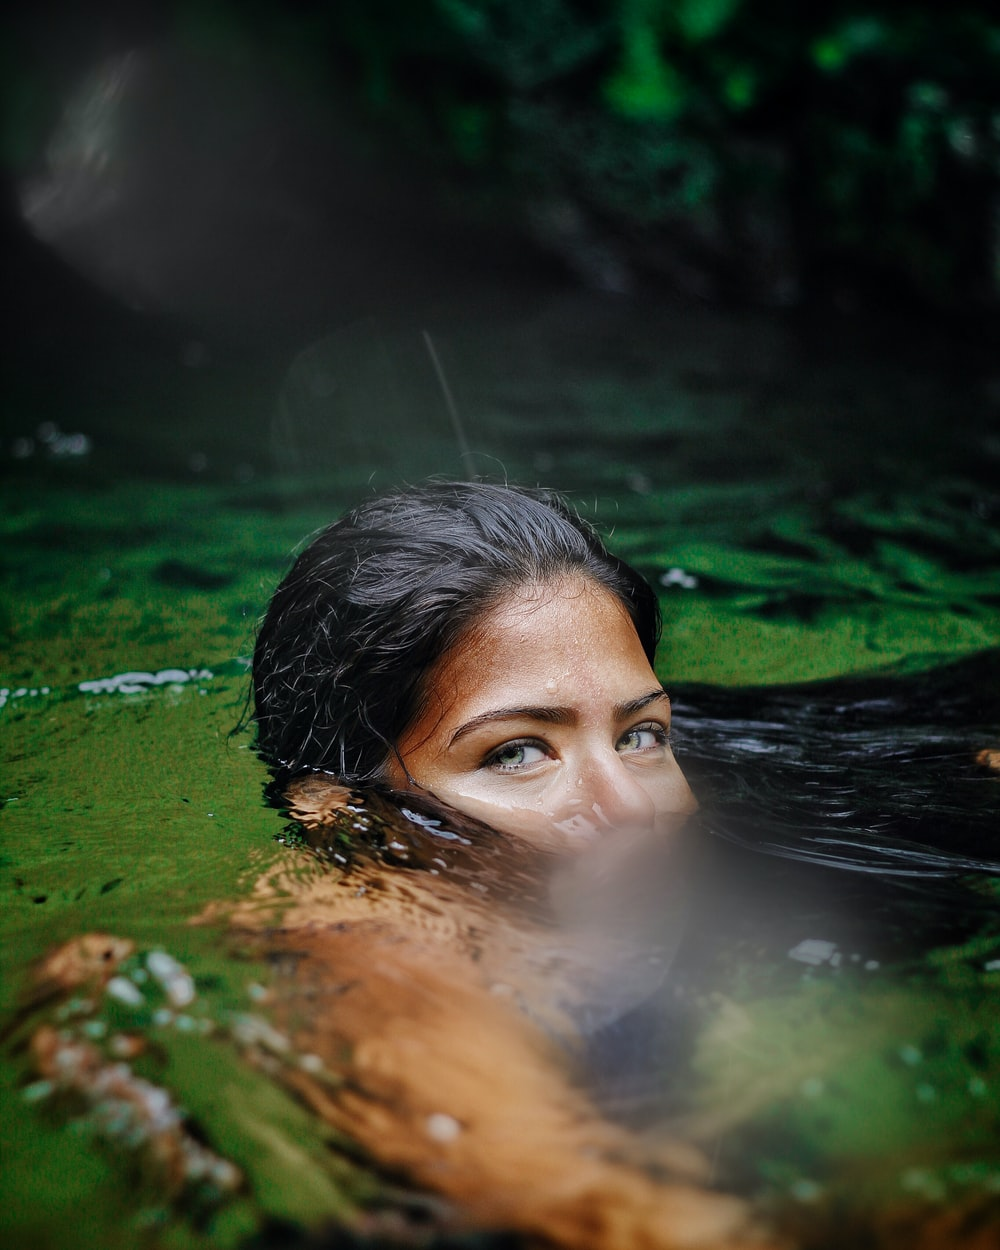 woman in water in close up photography